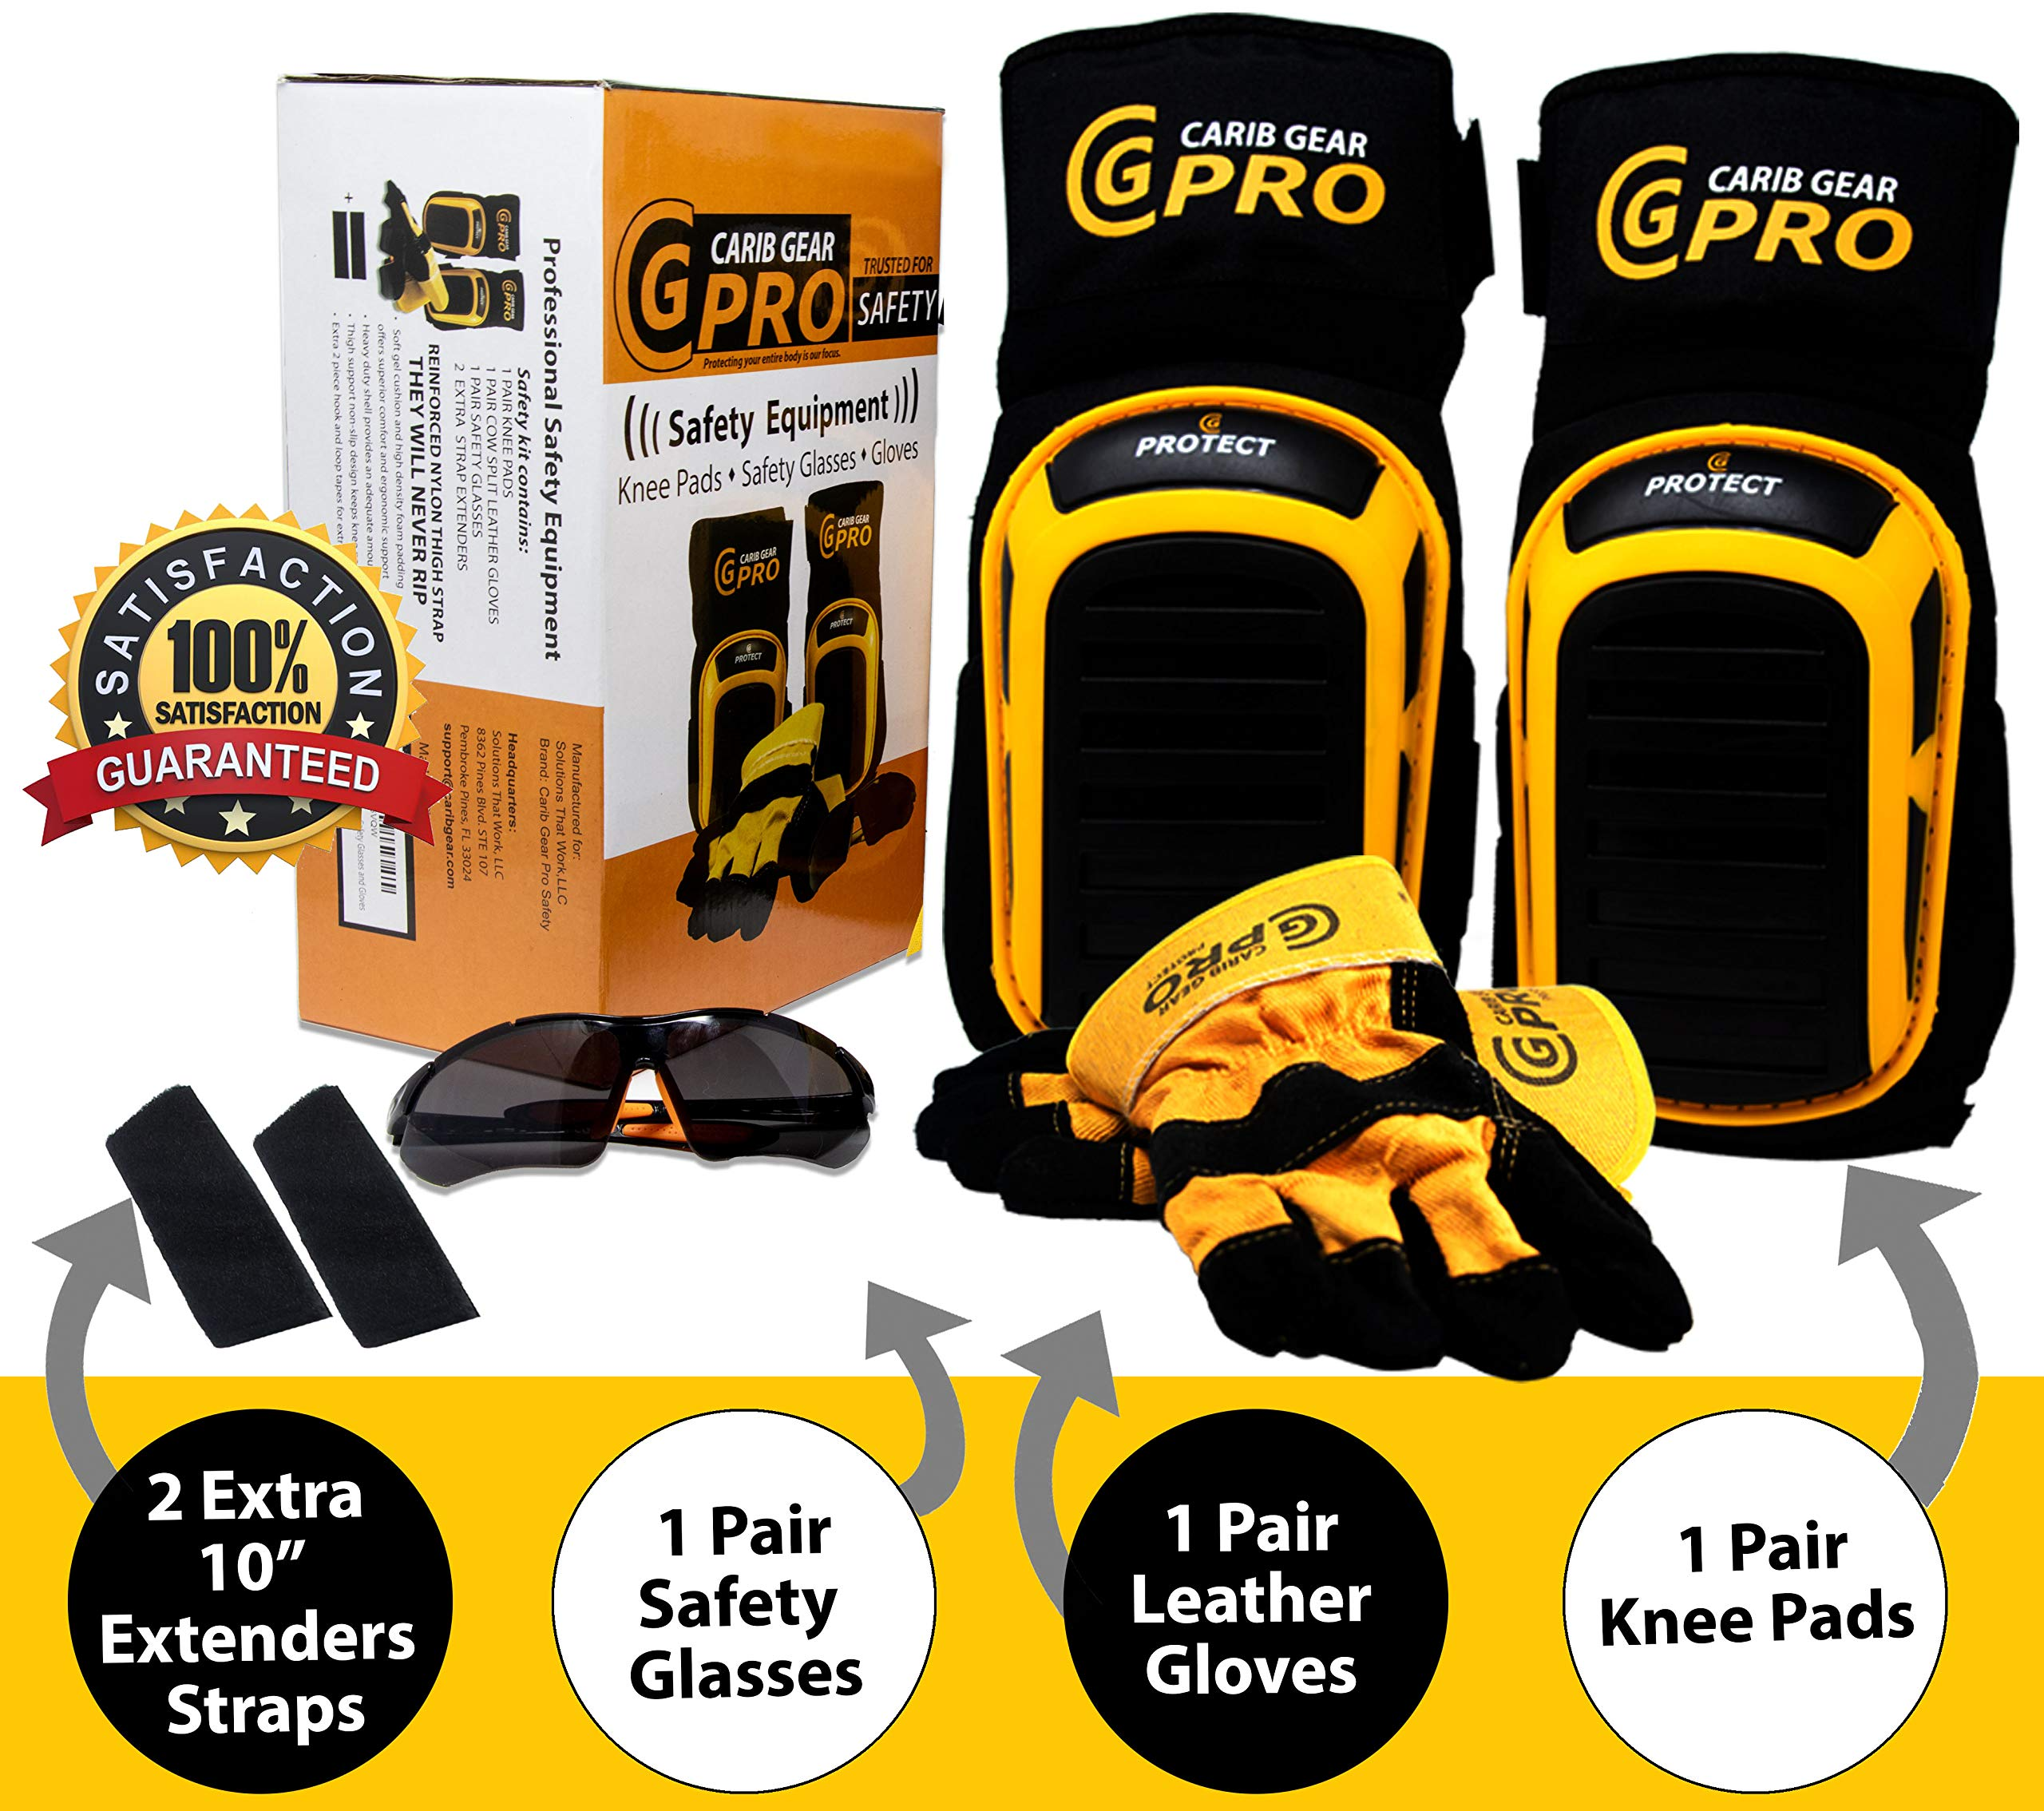 Knee Pads For Work- Heavy Duty Construction Gel knee Pads Best Tool for Tiling, Gardening, Flooring, Cleaning, Comfortable Foam Cushion, Stretchable Anti-Slip Thigh Straps with Safety Glasses & Gloves by Carib Gear Pro Safety